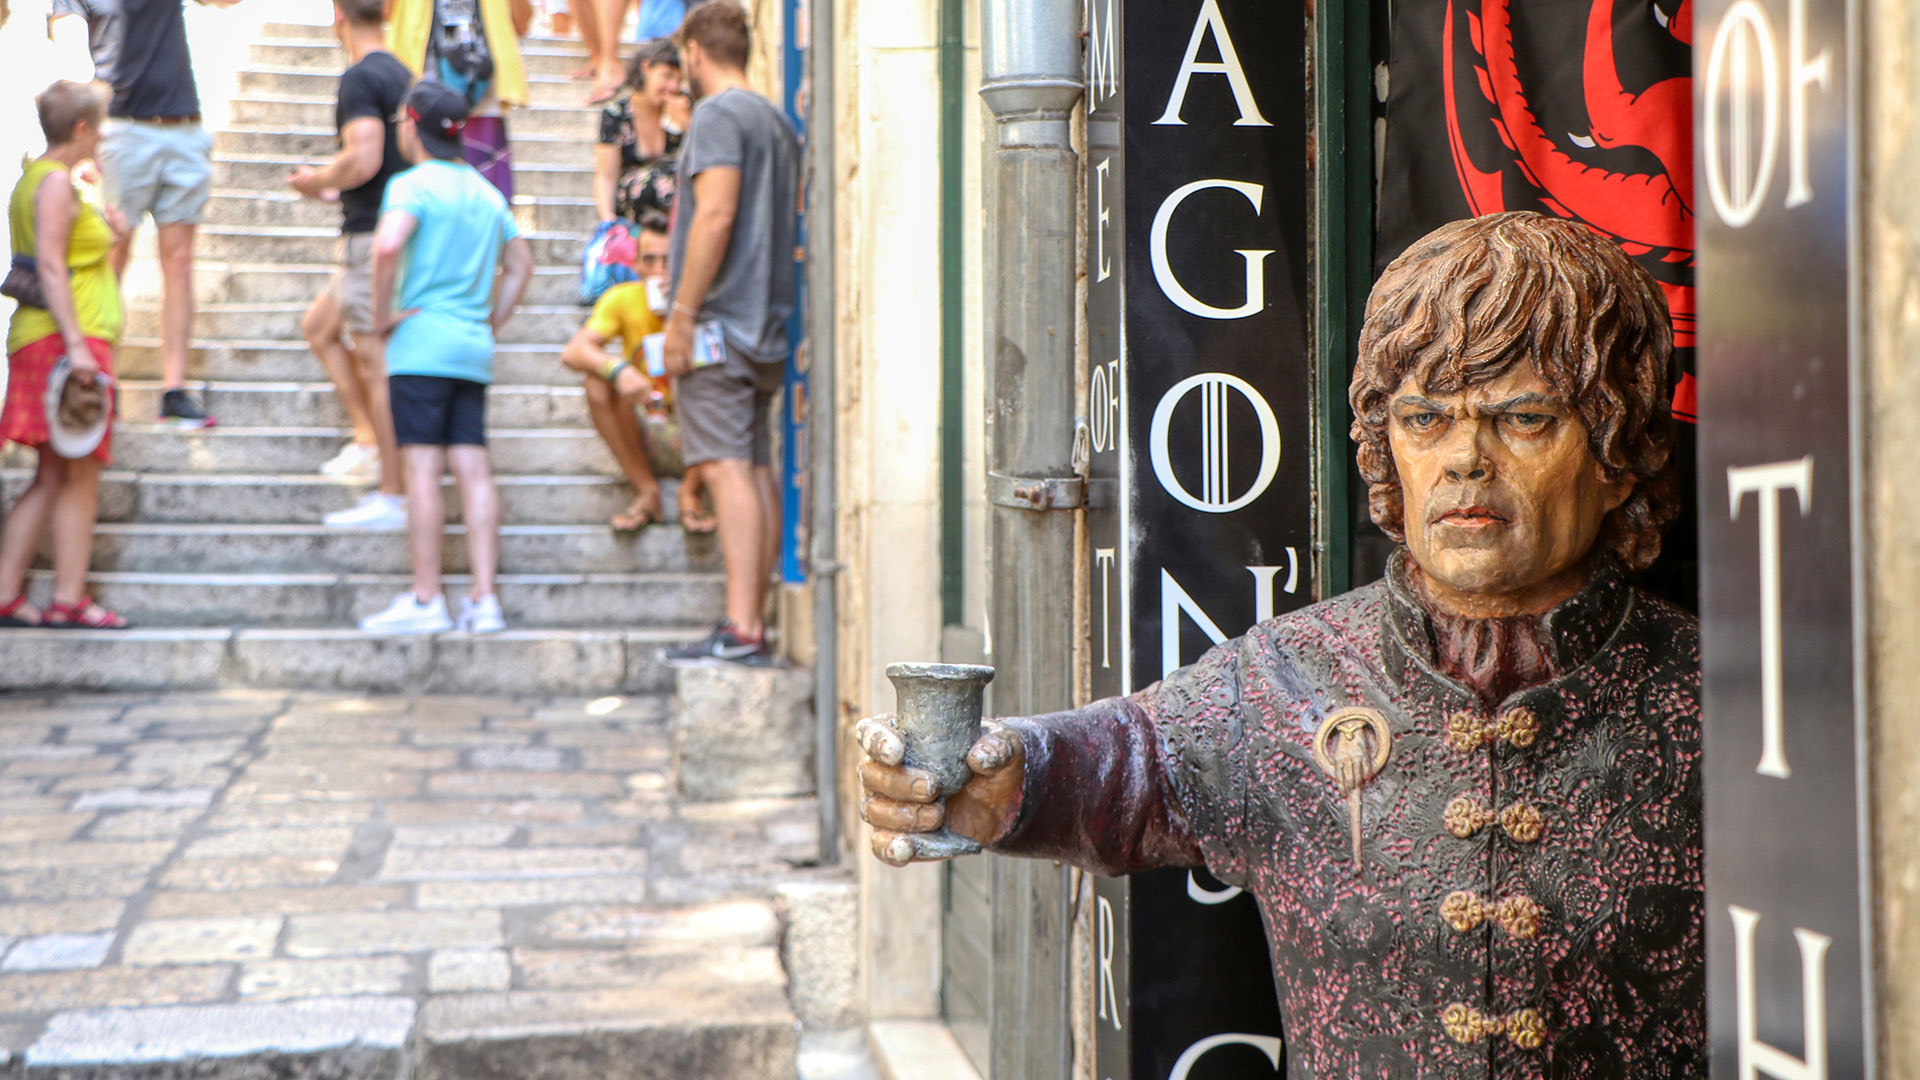 GAME OF THRONES PRIVATE GUIDED TOUR